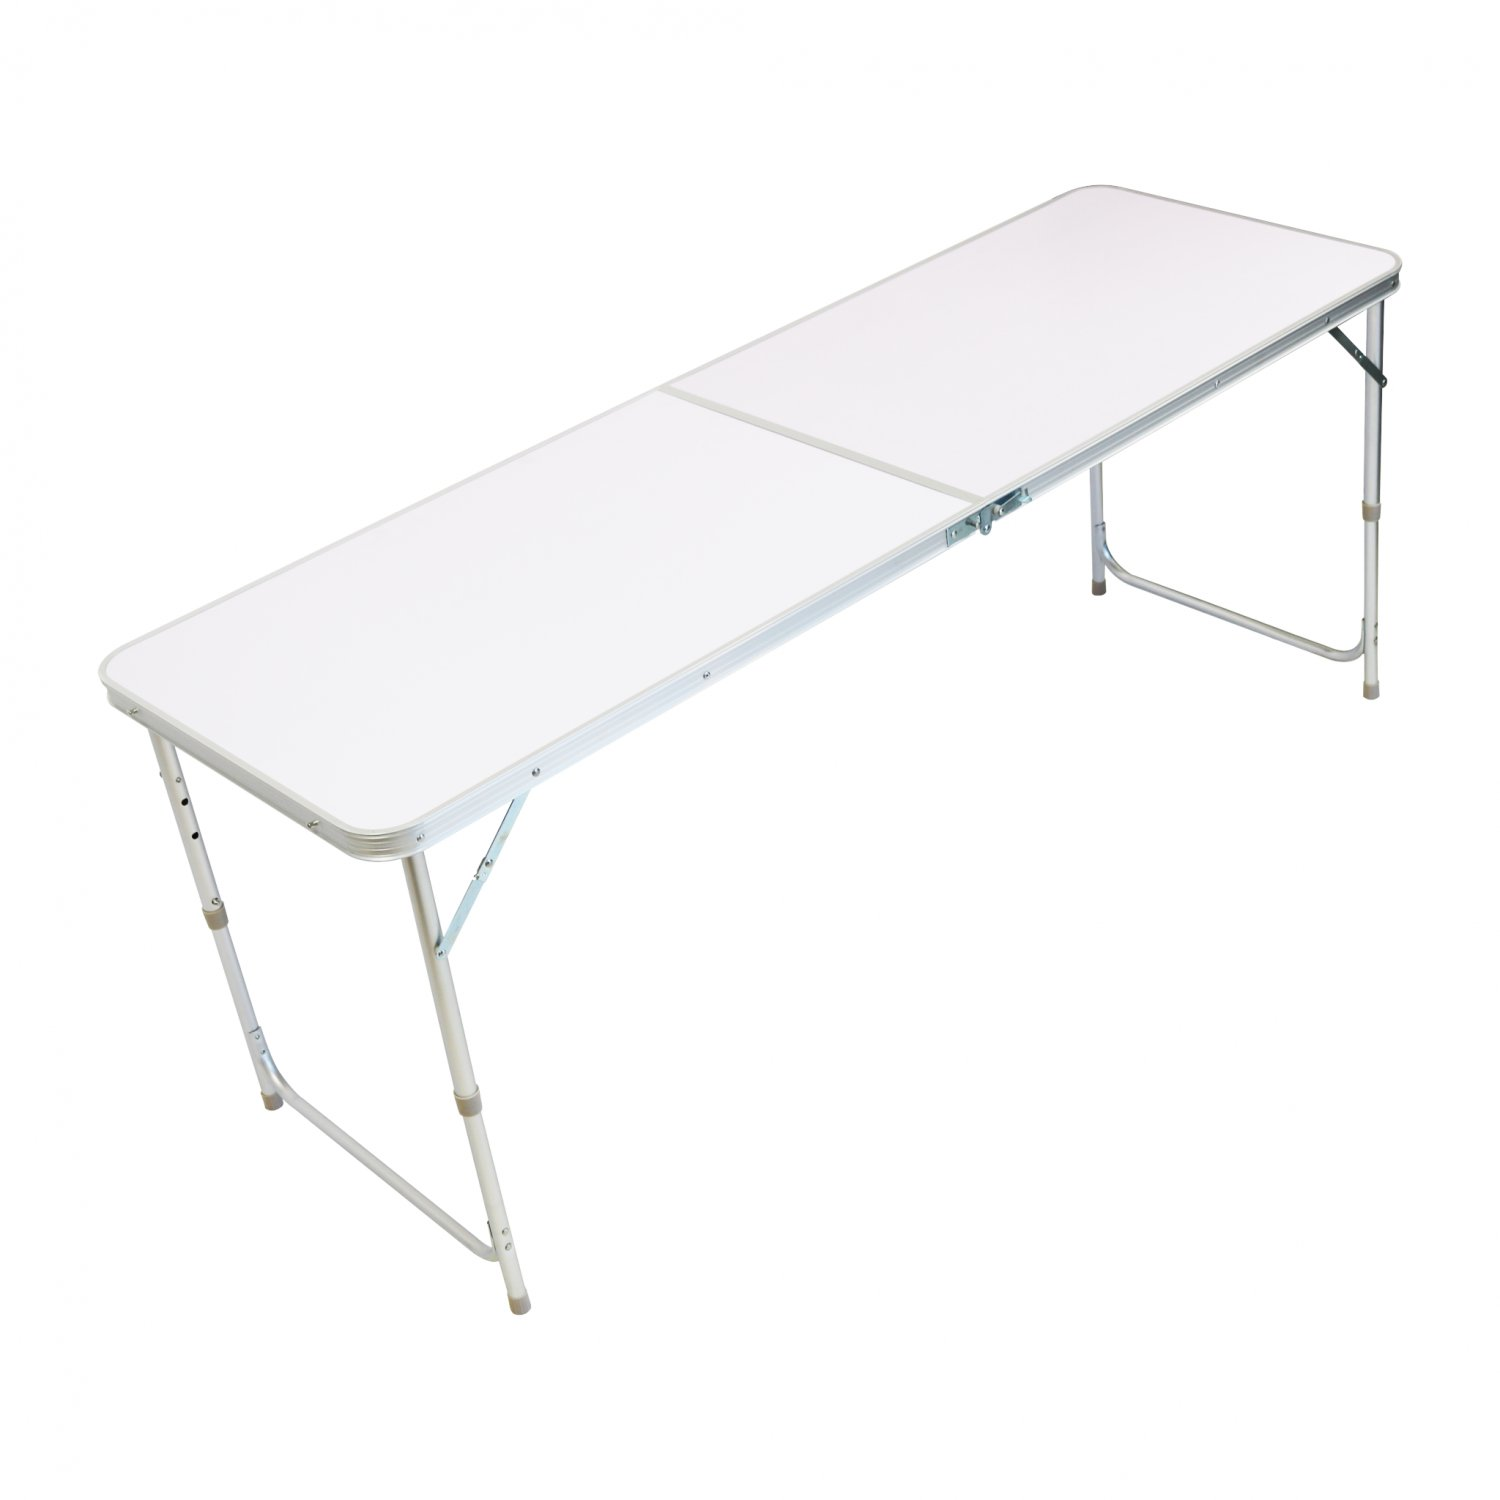 4ft folding outdoor camping kitchen work top table  £21